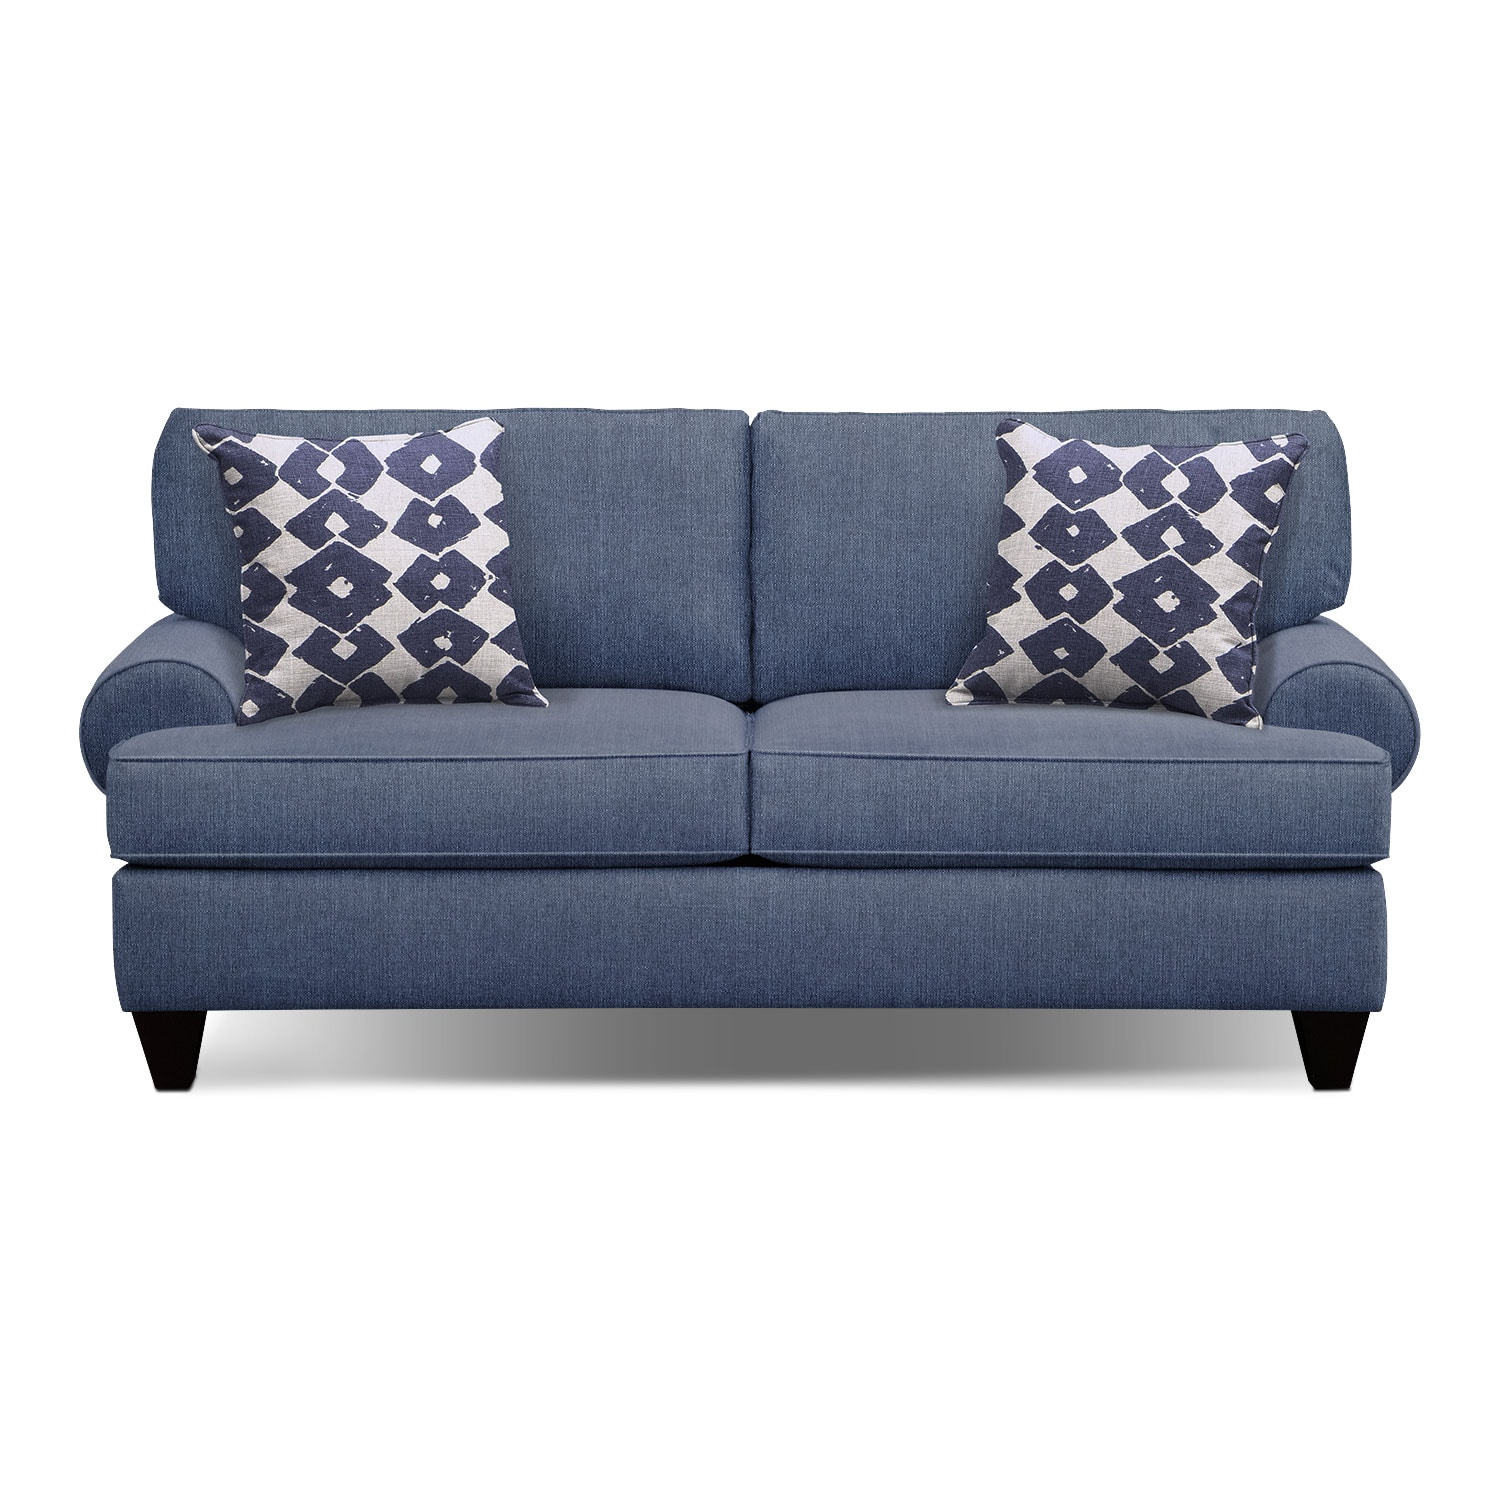 "Bailey Blue 79"" Innerspring Sleeper Sofa"